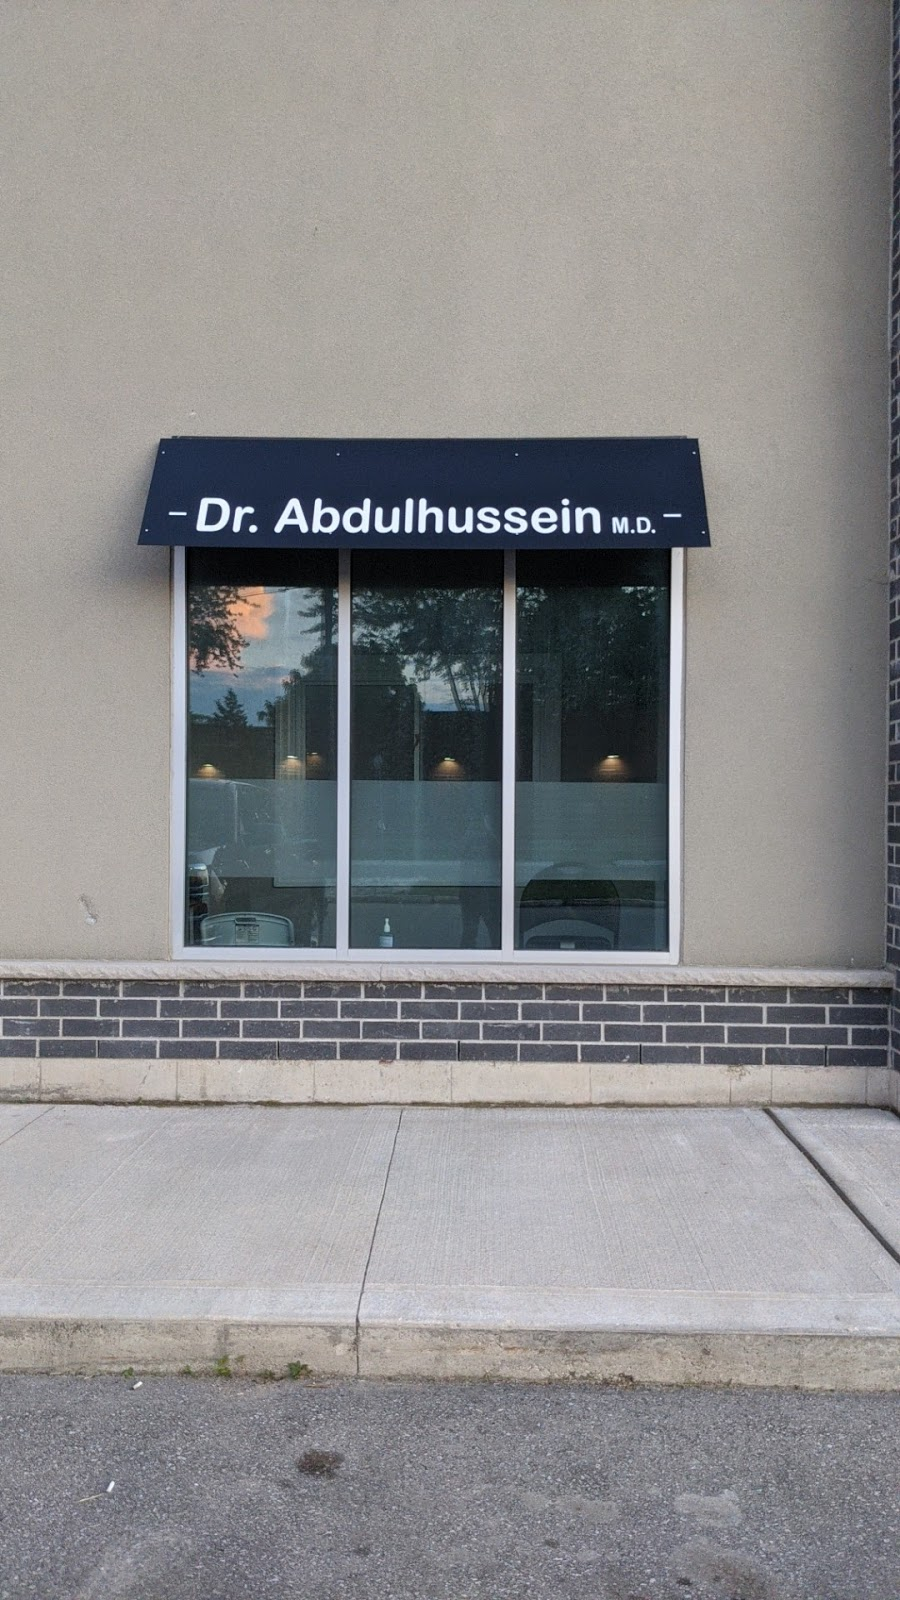 Dr. A Abdulhussein | doctor | 300 Main St, Woodstock, ON N4S 1T3, Canada | 5192905080 OR +1 519-290-5080